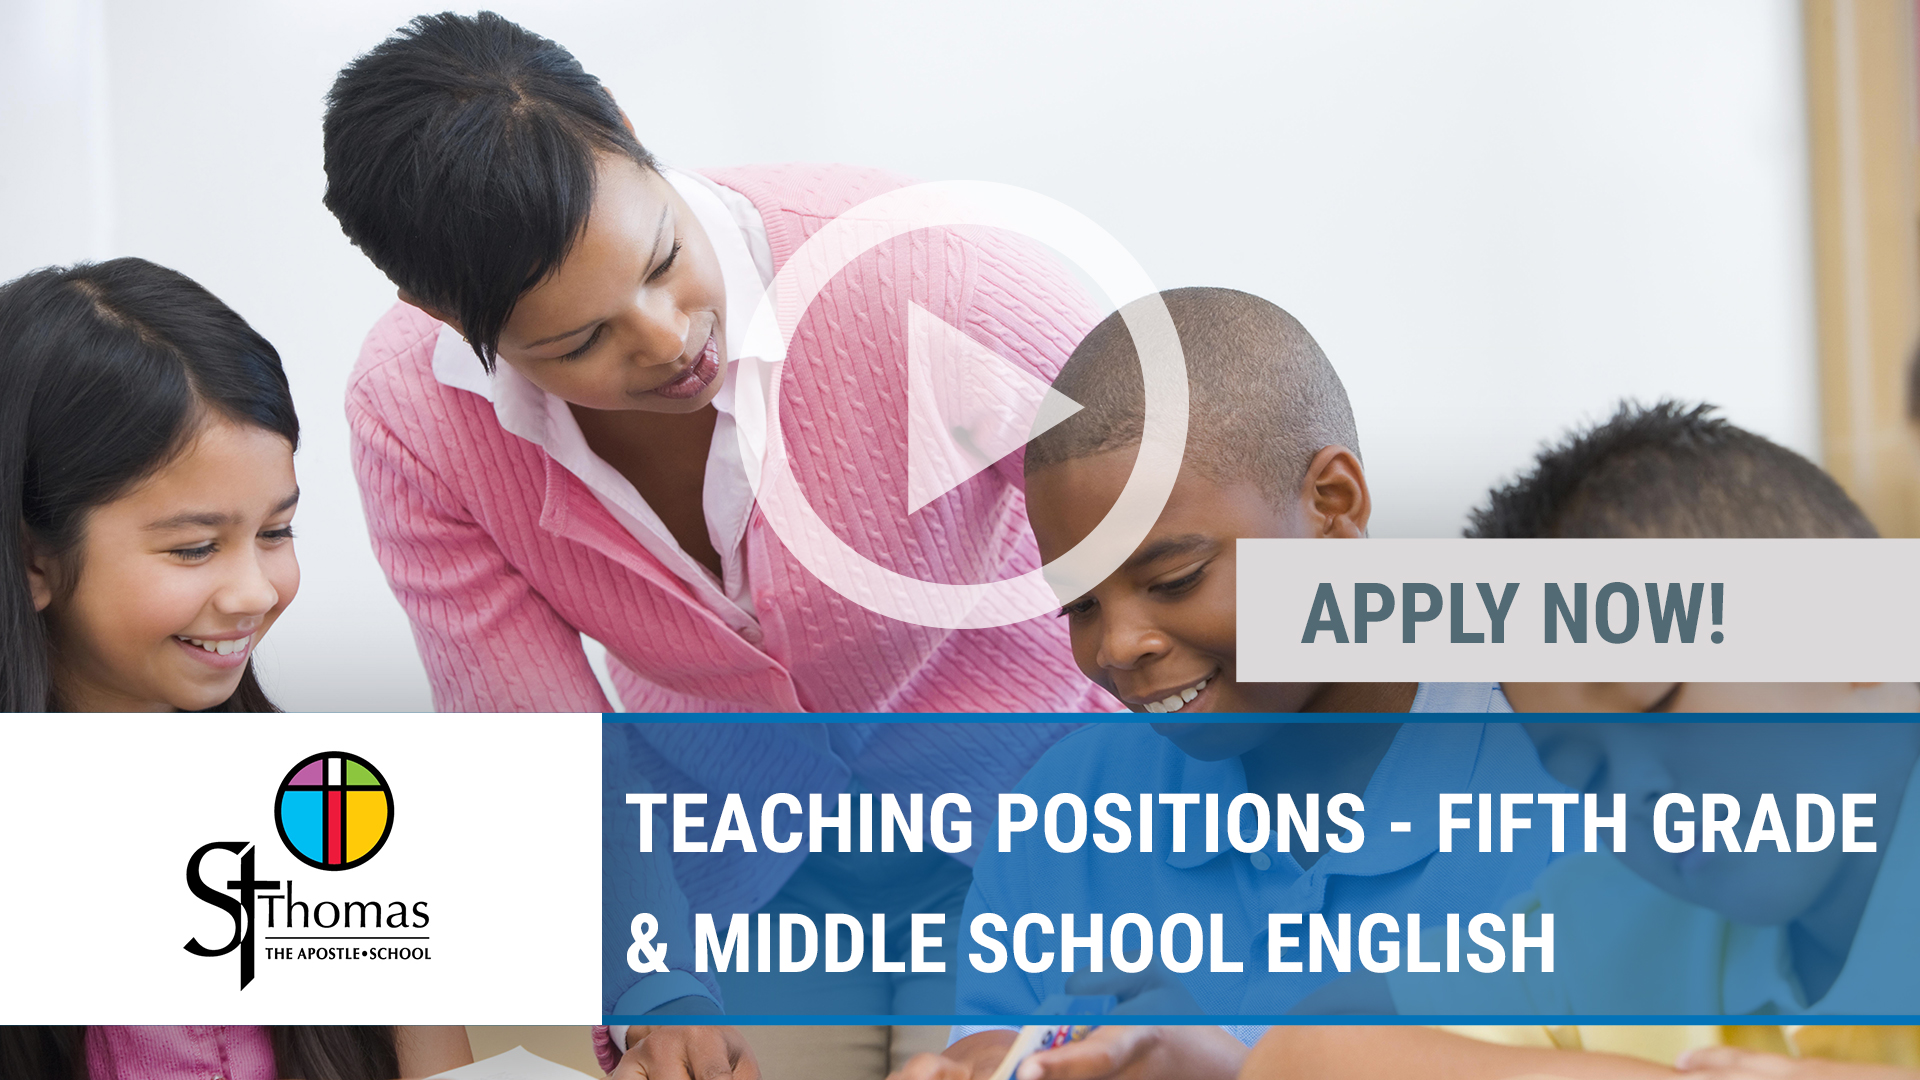 Watch our careers video for available job opening TEACHING POSITIONS - FIFTH GRADE & MIDDLE SCHOOL  in Peoria Heights, IL